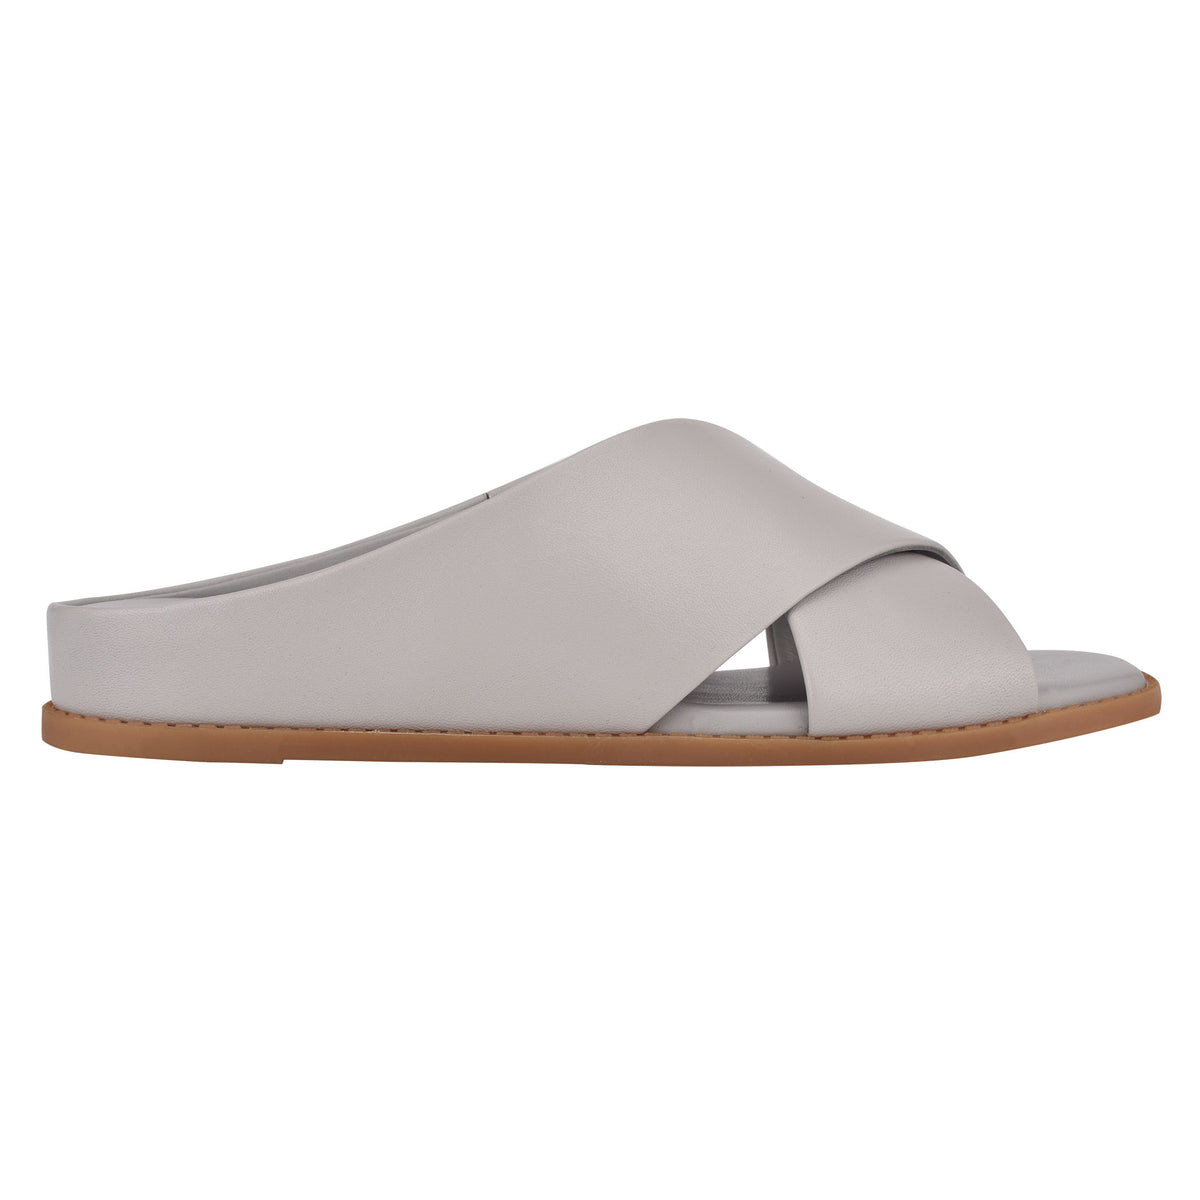 Martha Stewart Olive Slip On Sandals